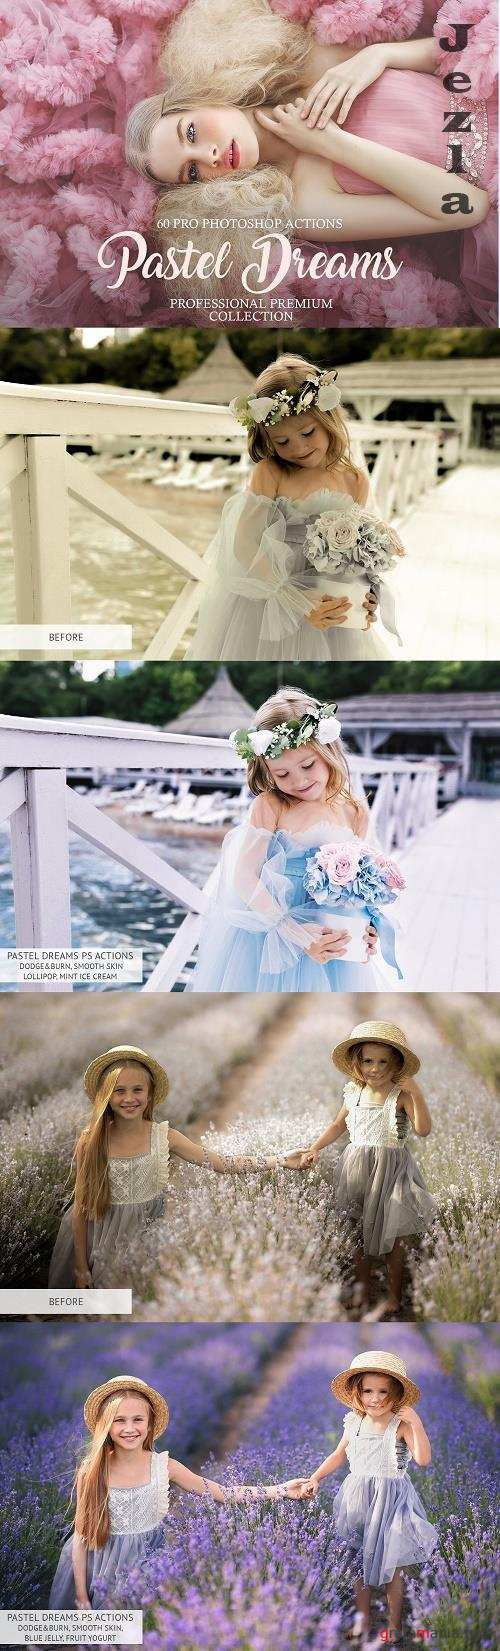 Pastel Dreams Photoshop Actions - 3576799